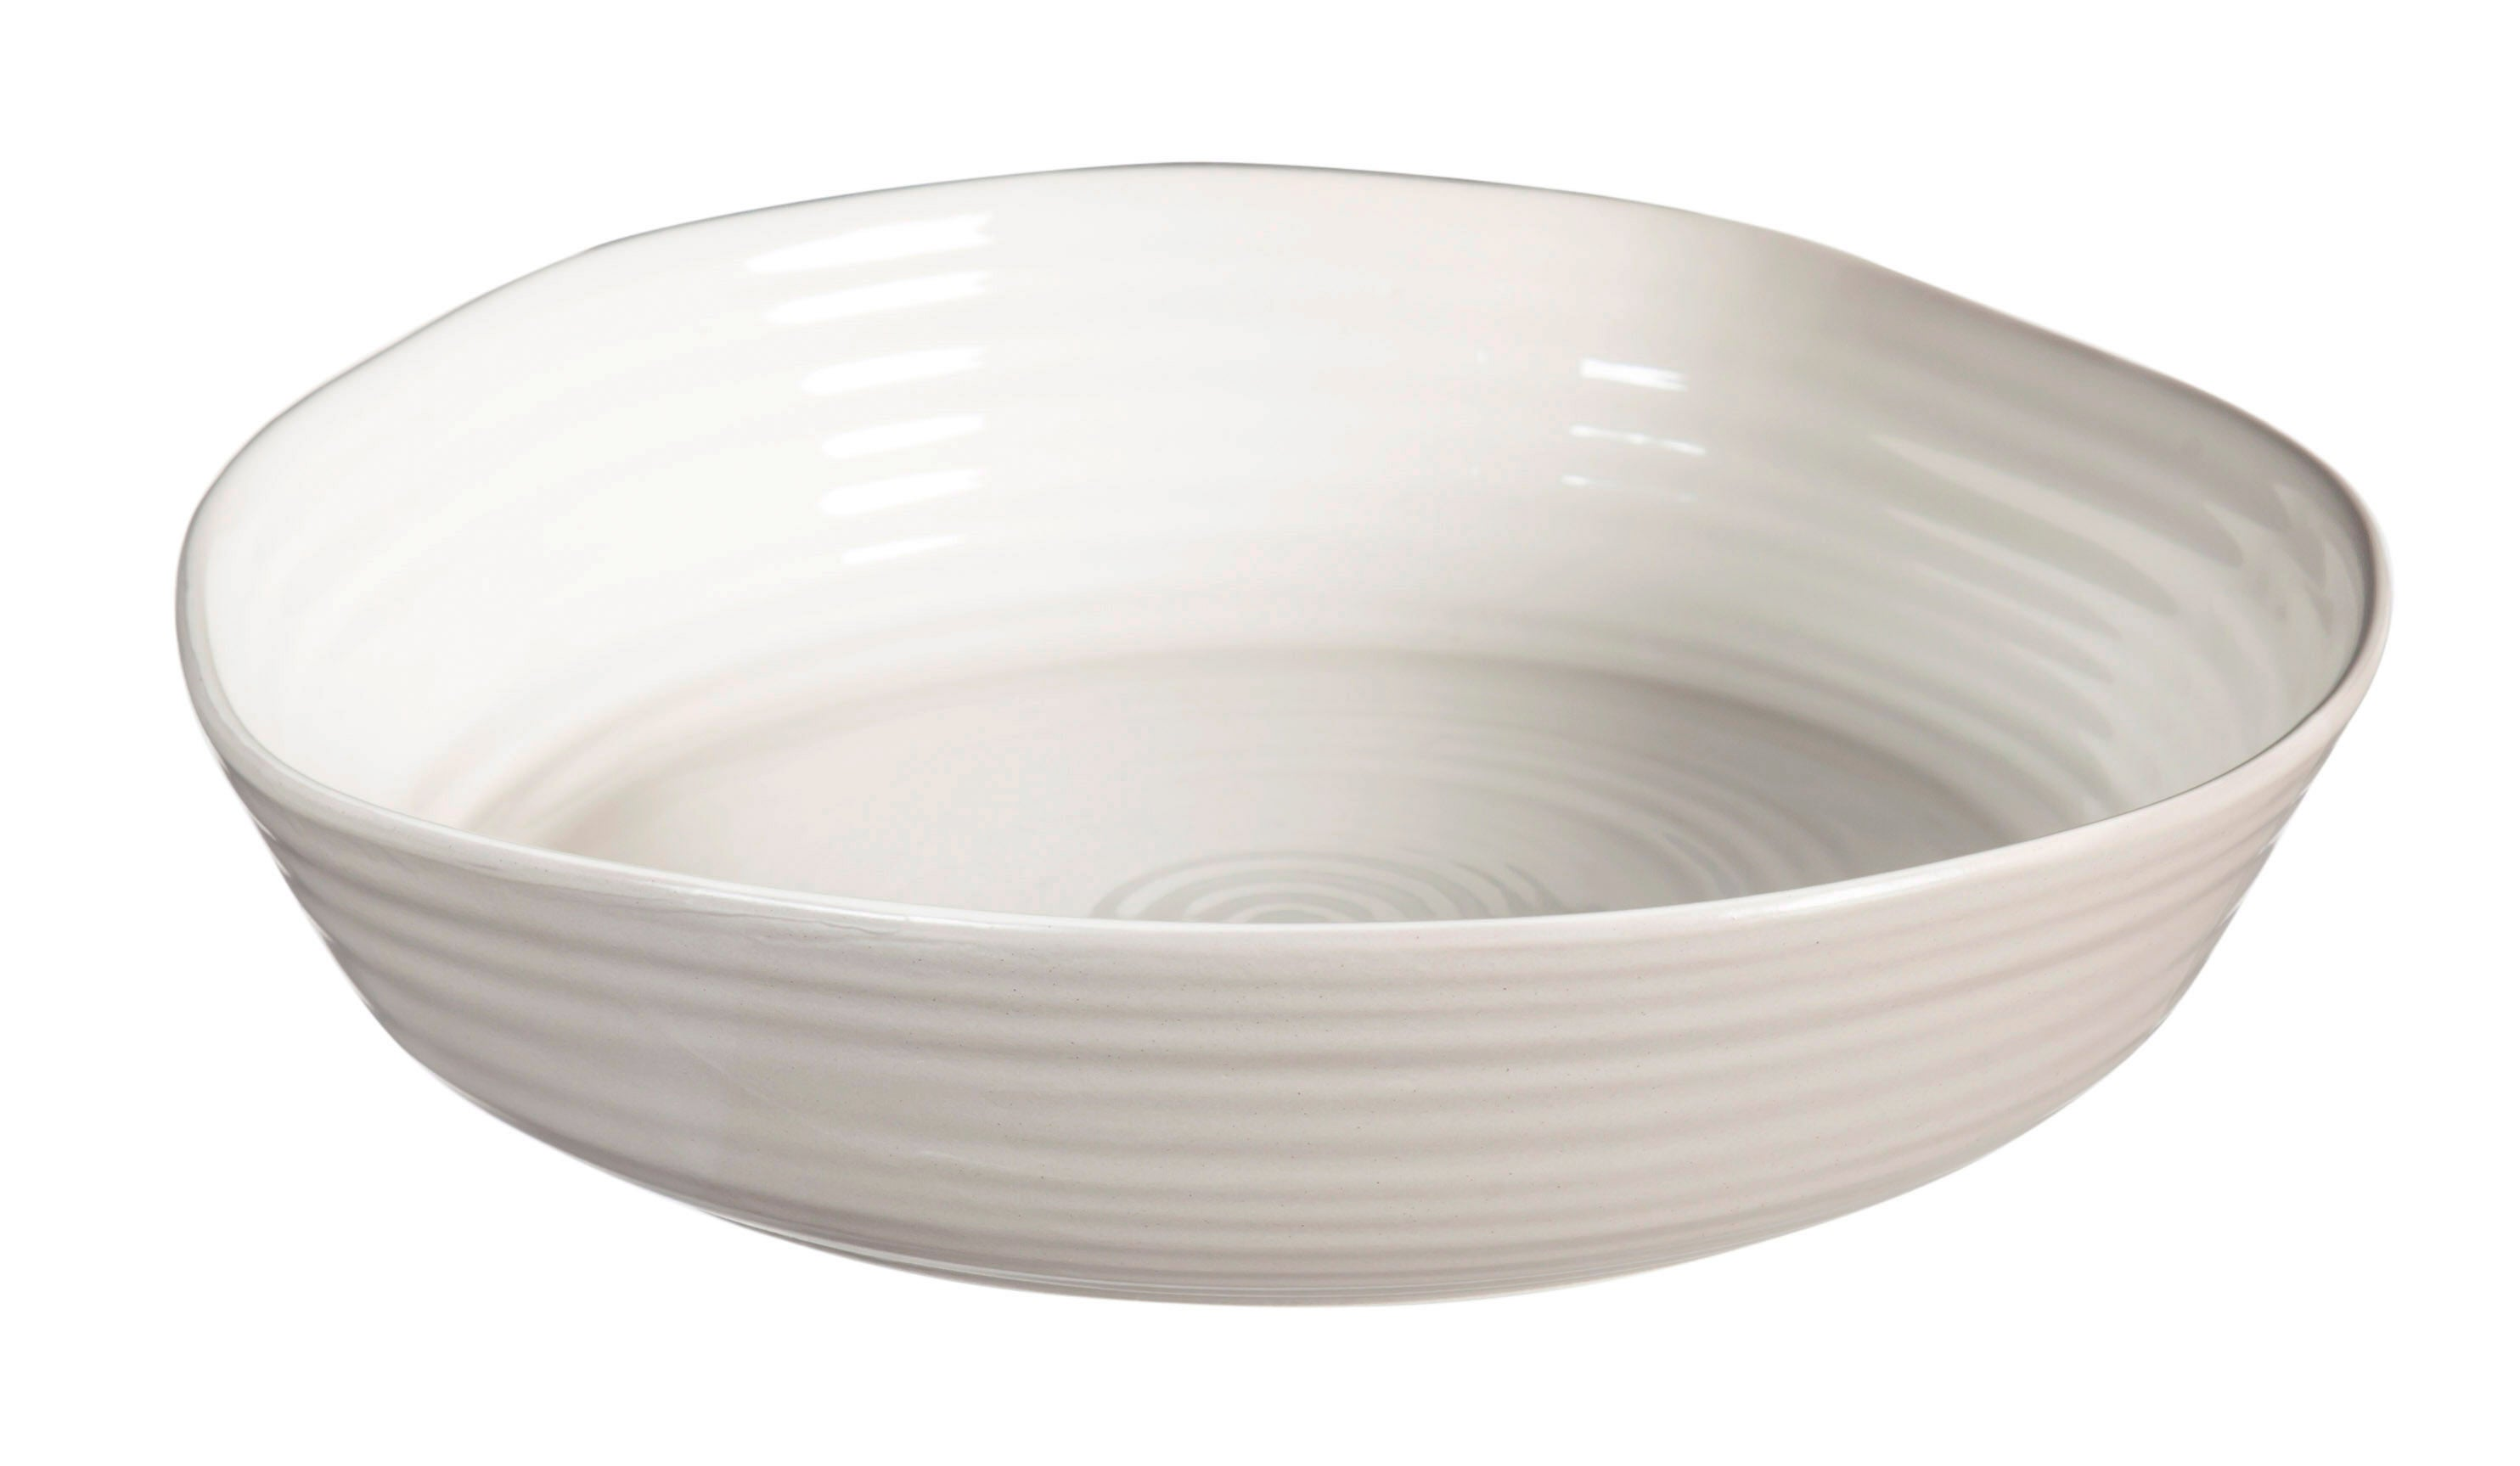 Shiloh Ceramic Embossed Serving Bowl